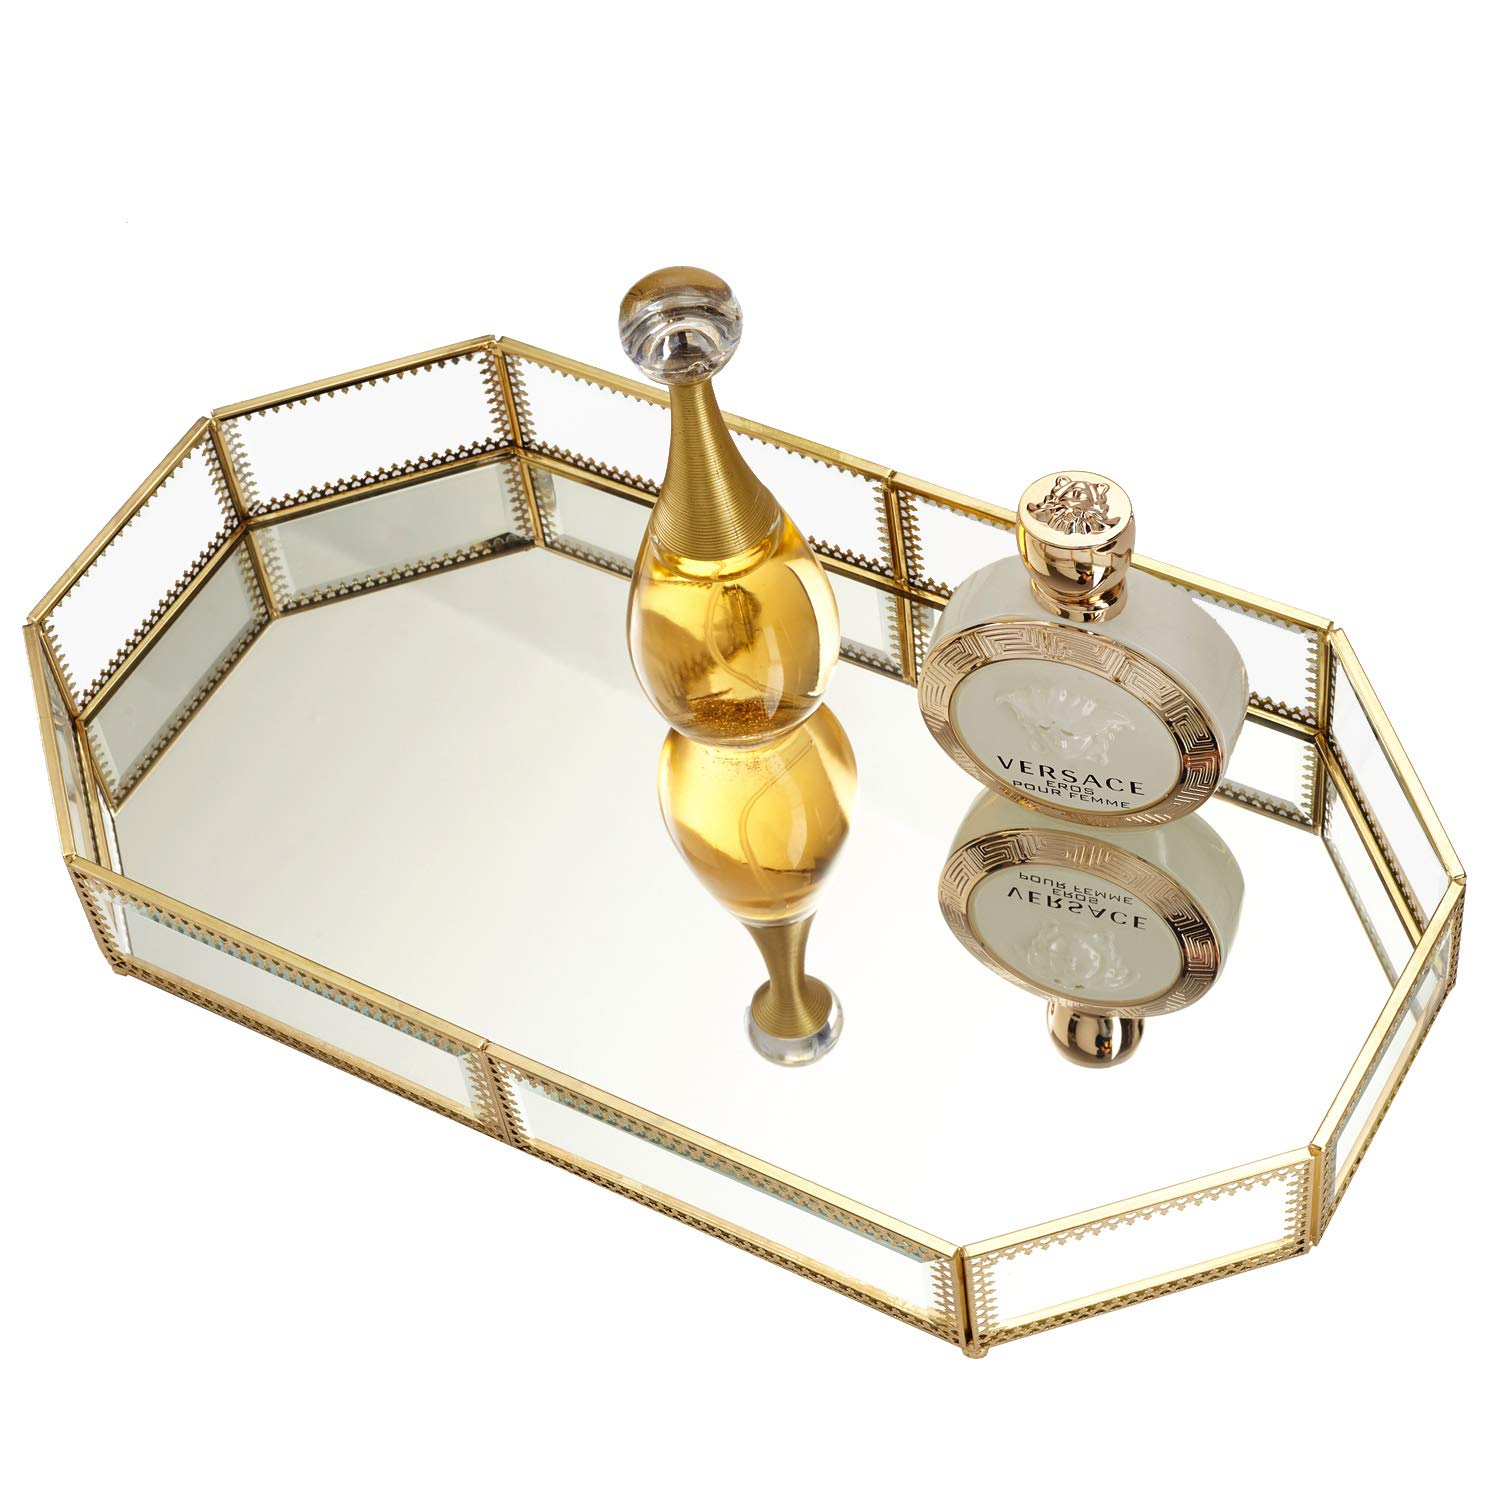 Hersoo Large Classic Vanity Tray/Ornate Decorative Perfume/Elegant Mirrorred Tray for Skincare/Dresser/Vintage Organizer for Bathroom/Countertop/Bathroom Accessories Organizer (Gold) by Hersoo (Image #4)